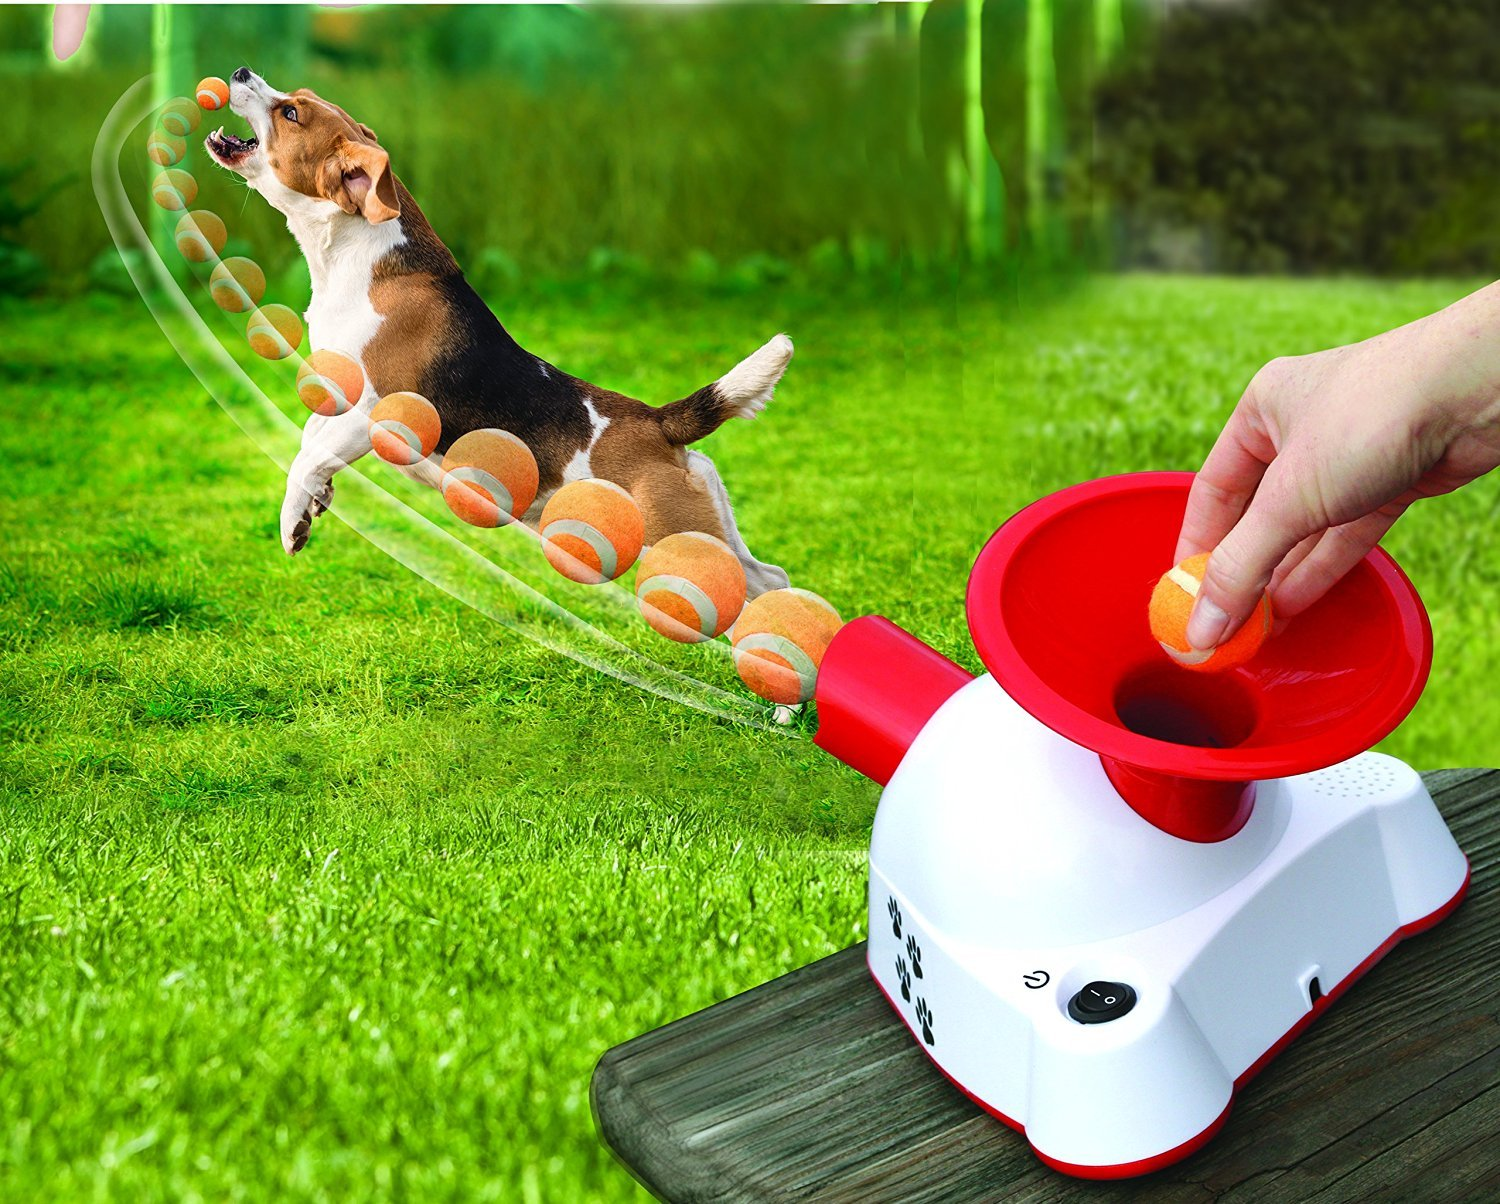 Gotcha Talking Dog Fetch Toy, An Automatic Ball Thrower/Launcher - Interactive Electronic Fetch Machine with 3 Small Tennis Balls (OLDER VERSION)